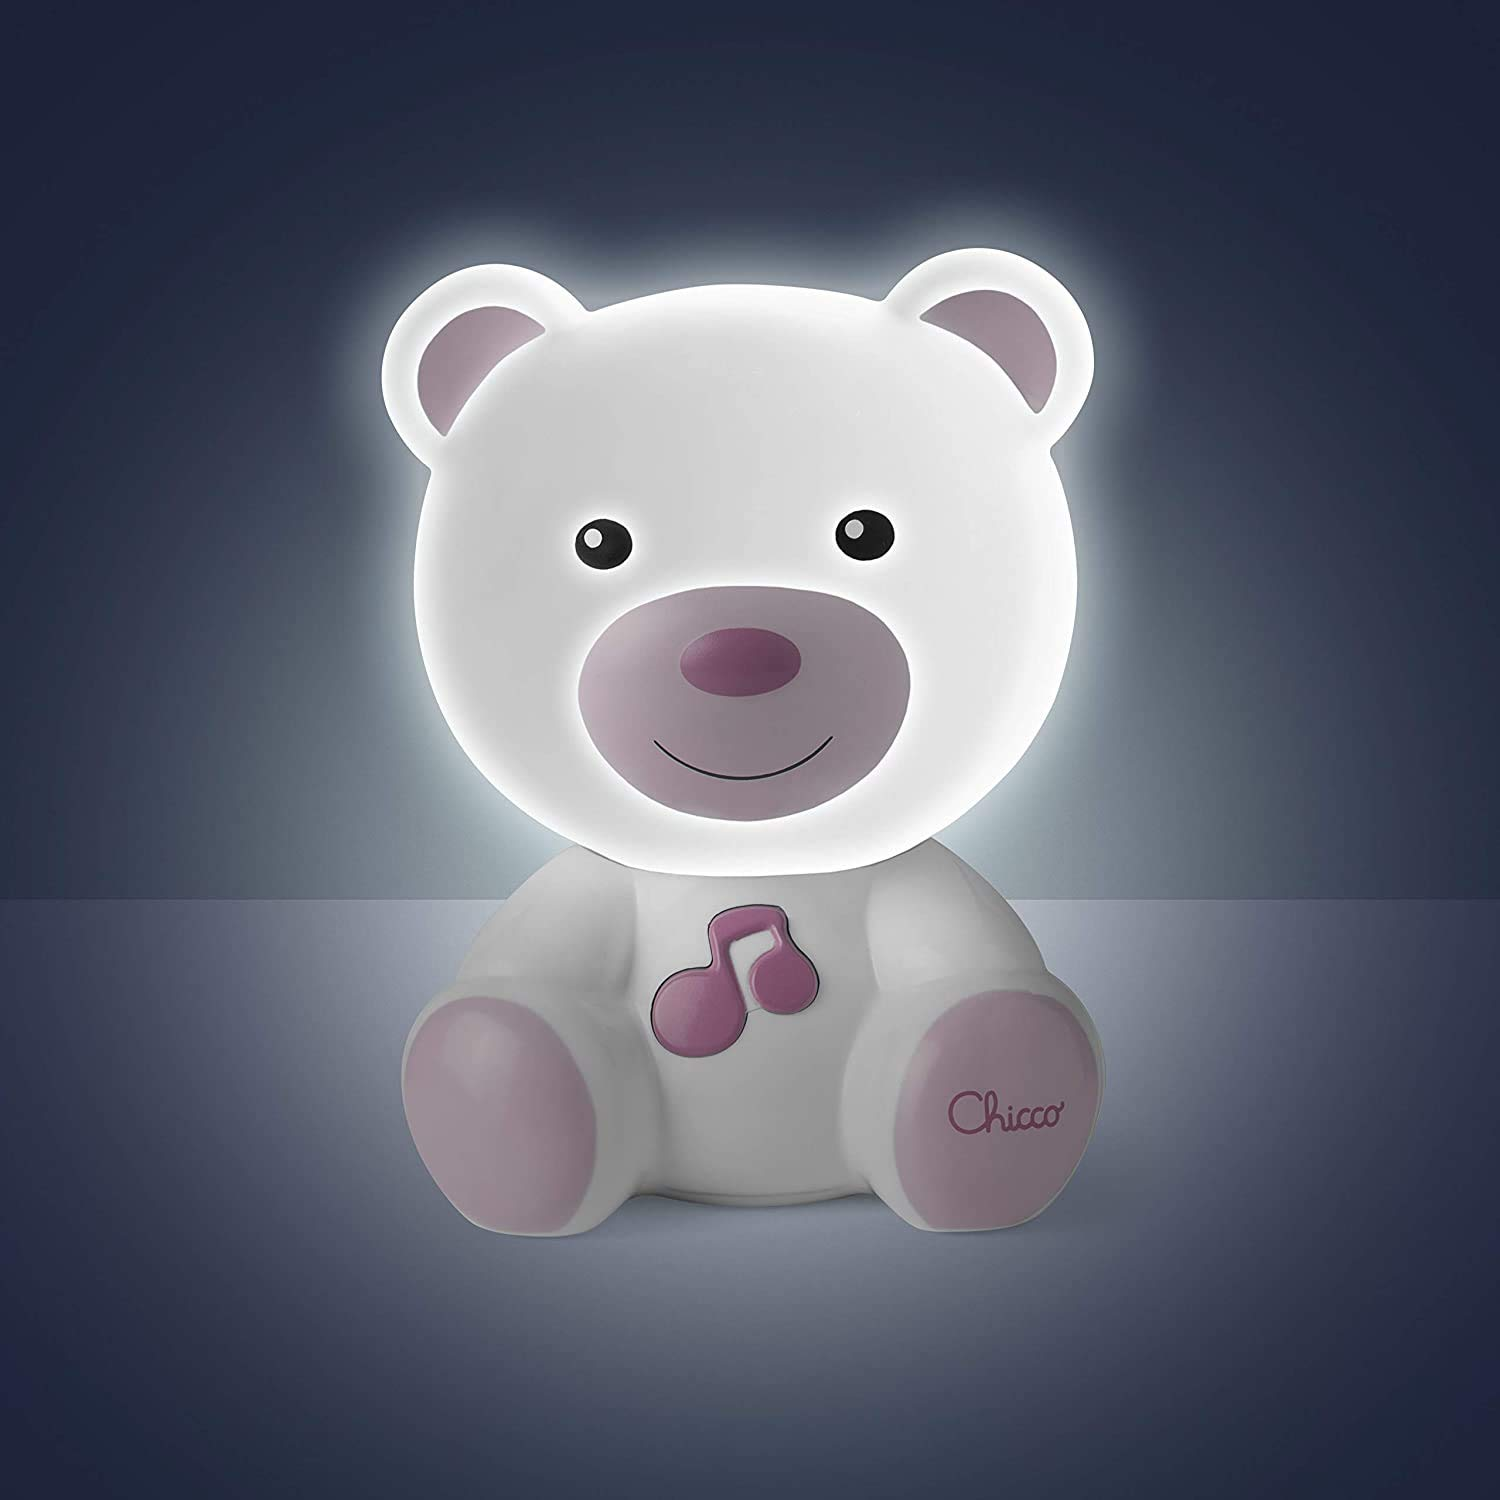 Chicco Dreamlight Projector Free shipping on posting reviews Light Cheap SALE Start Pink